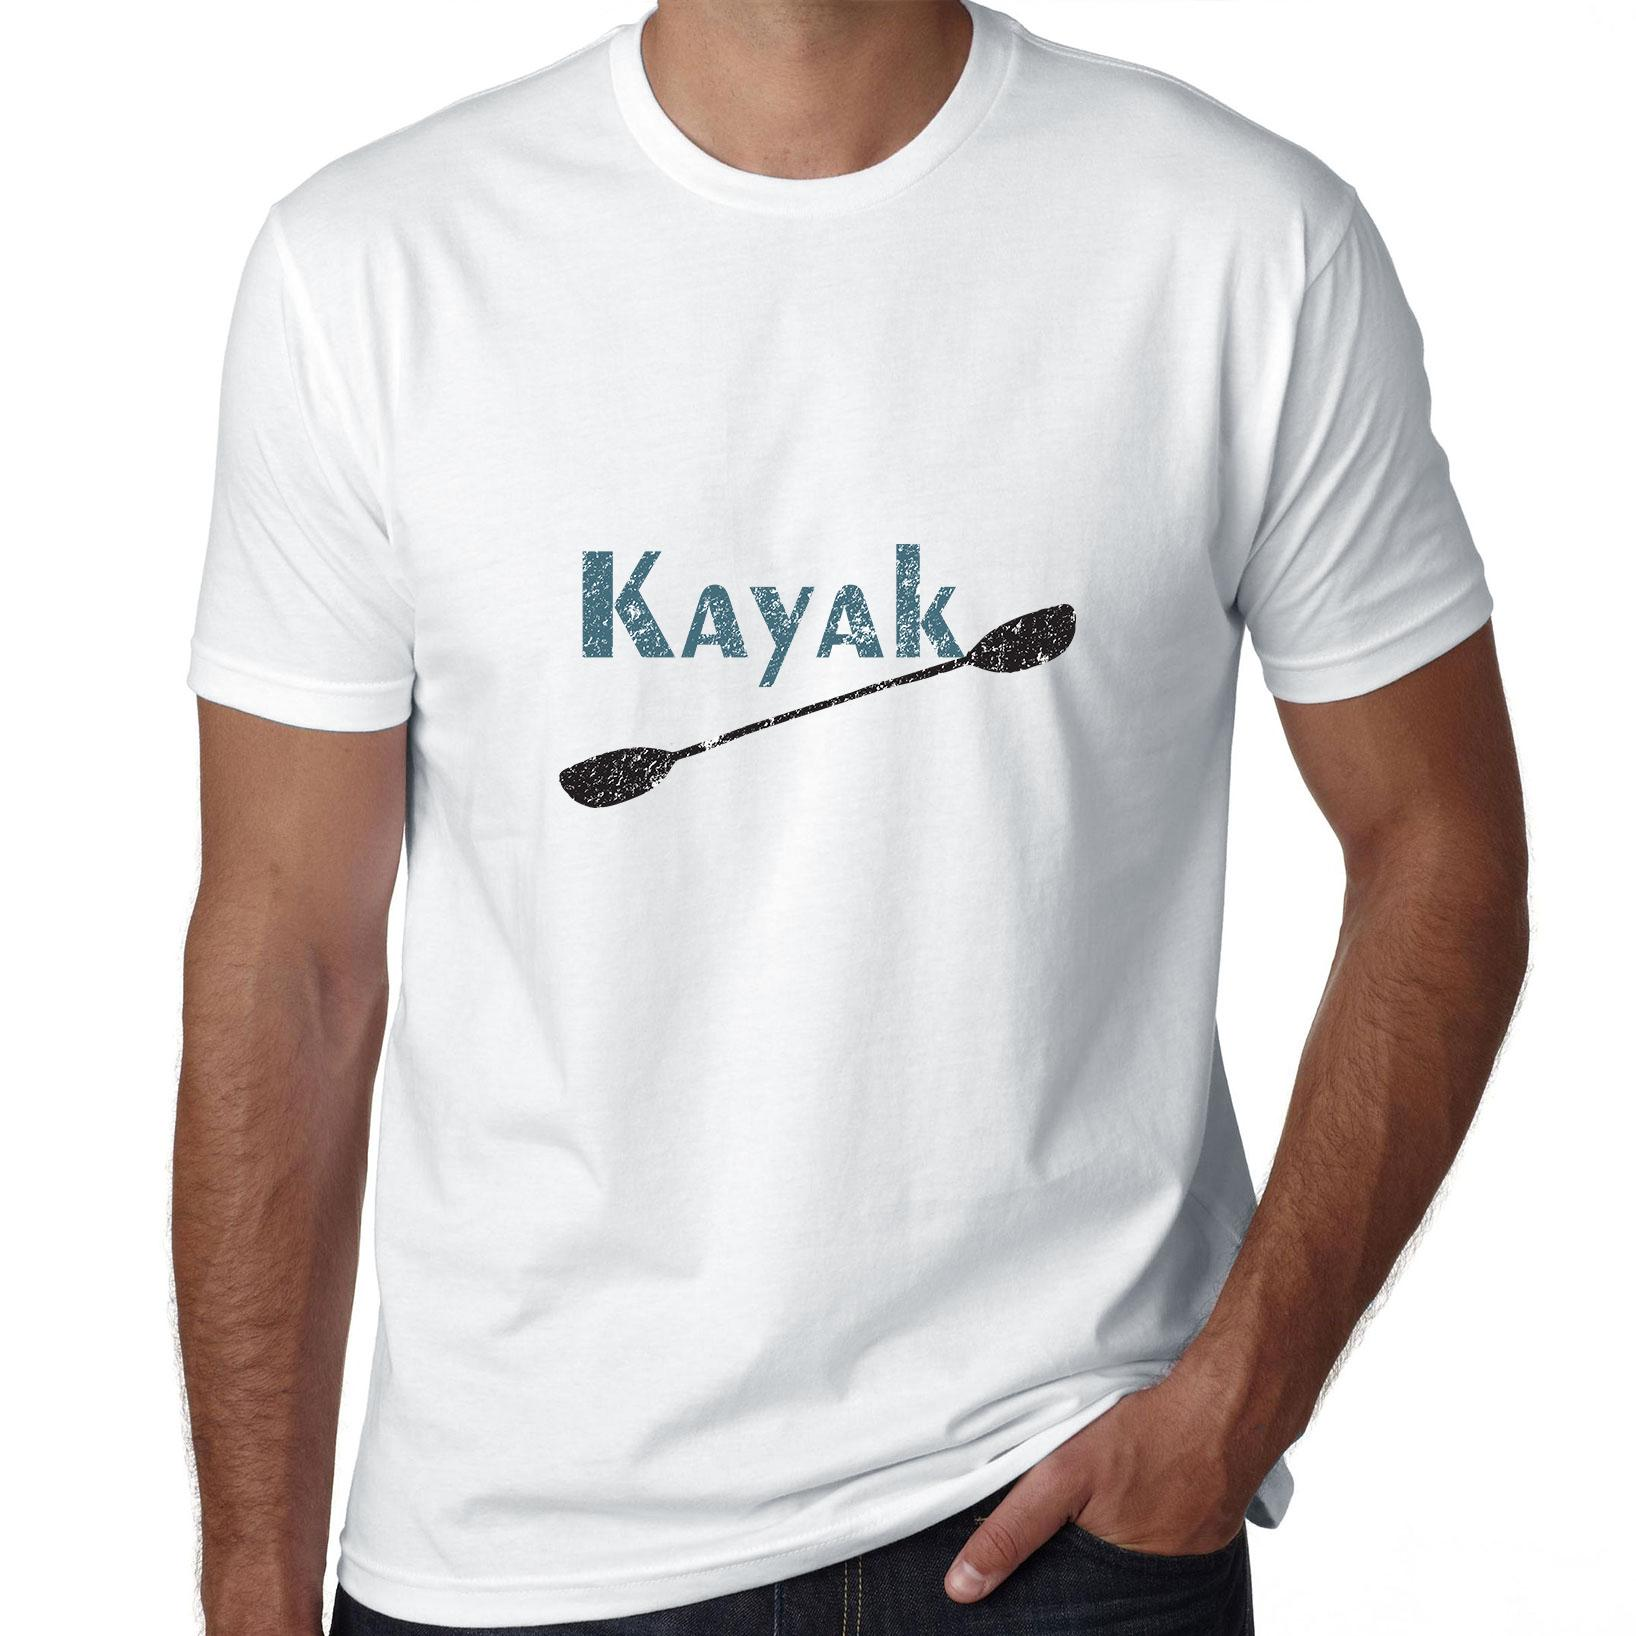 Simple Kayak with Kayaker Paddle Graphic Men's T-Shirt